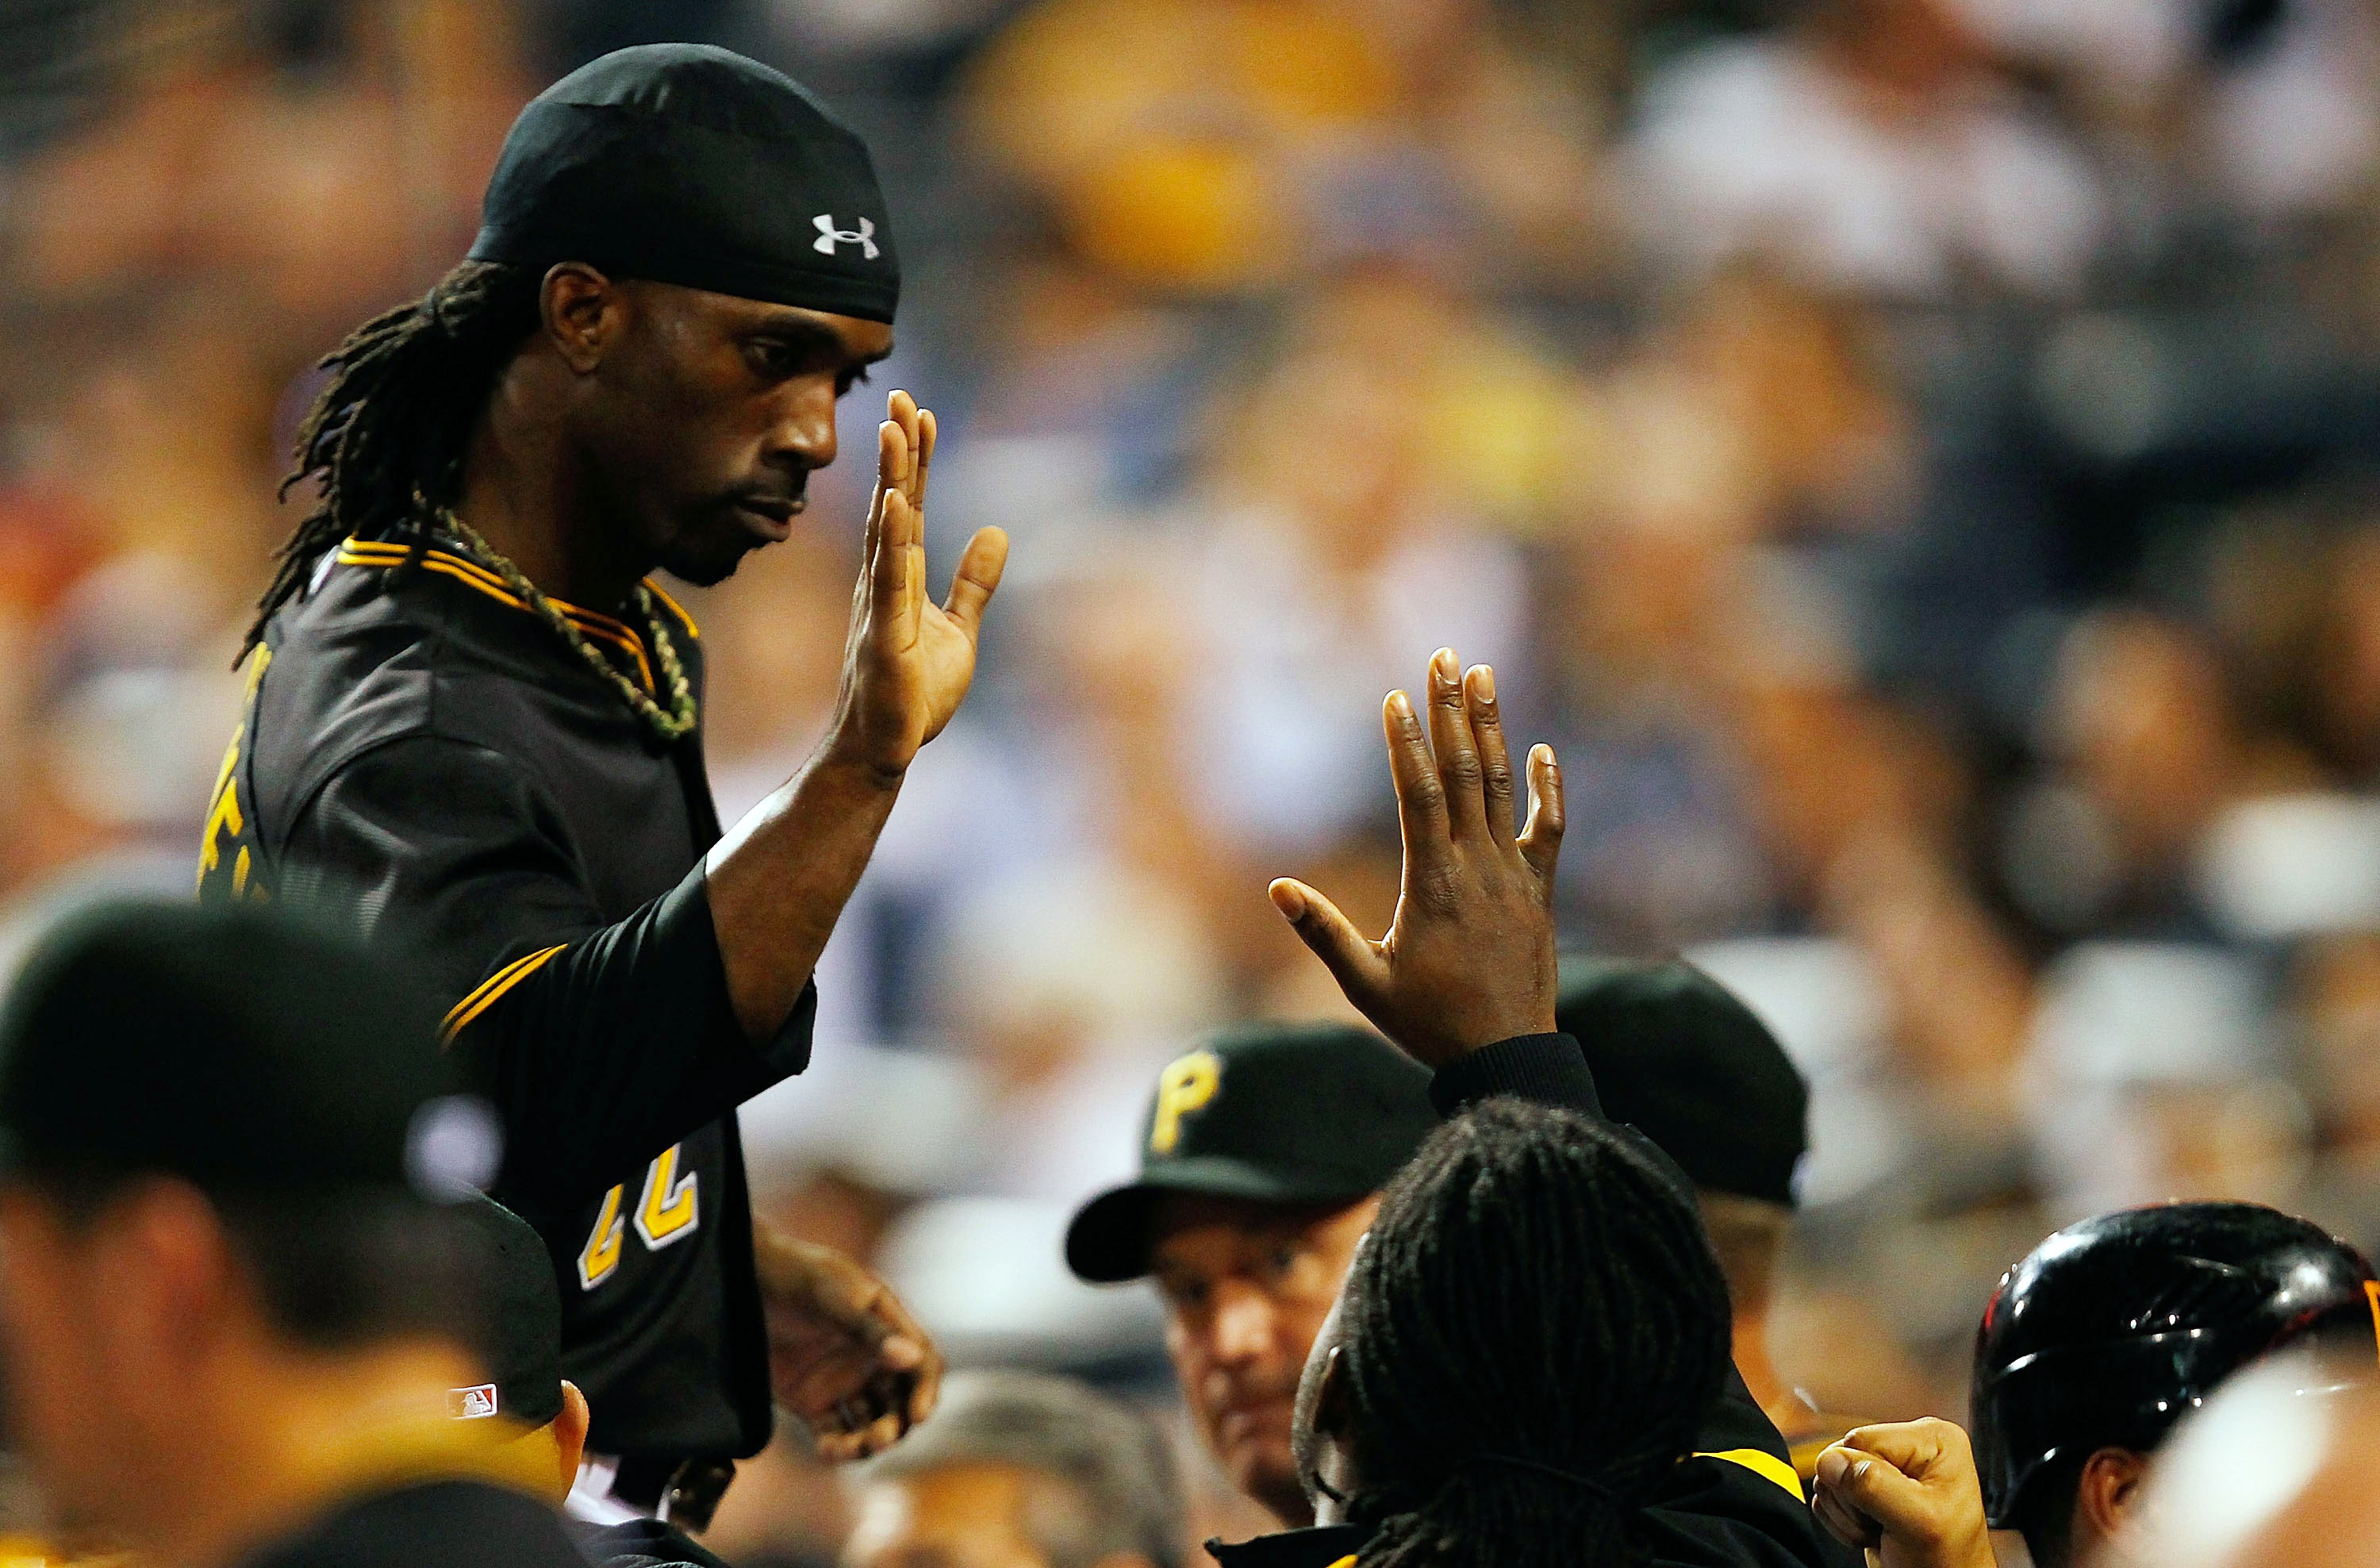 PITTSBURGH - SEPTEMBER 21:  Andrew McCutchen #22 of the Pittsburgh Pirates is congratulated by teammates in the dugout after scoring against the St. Louis Cardinals during the game on September 21, 2010 at PNC Park in Pittsburgh, Pennsylvania.  (Photo by